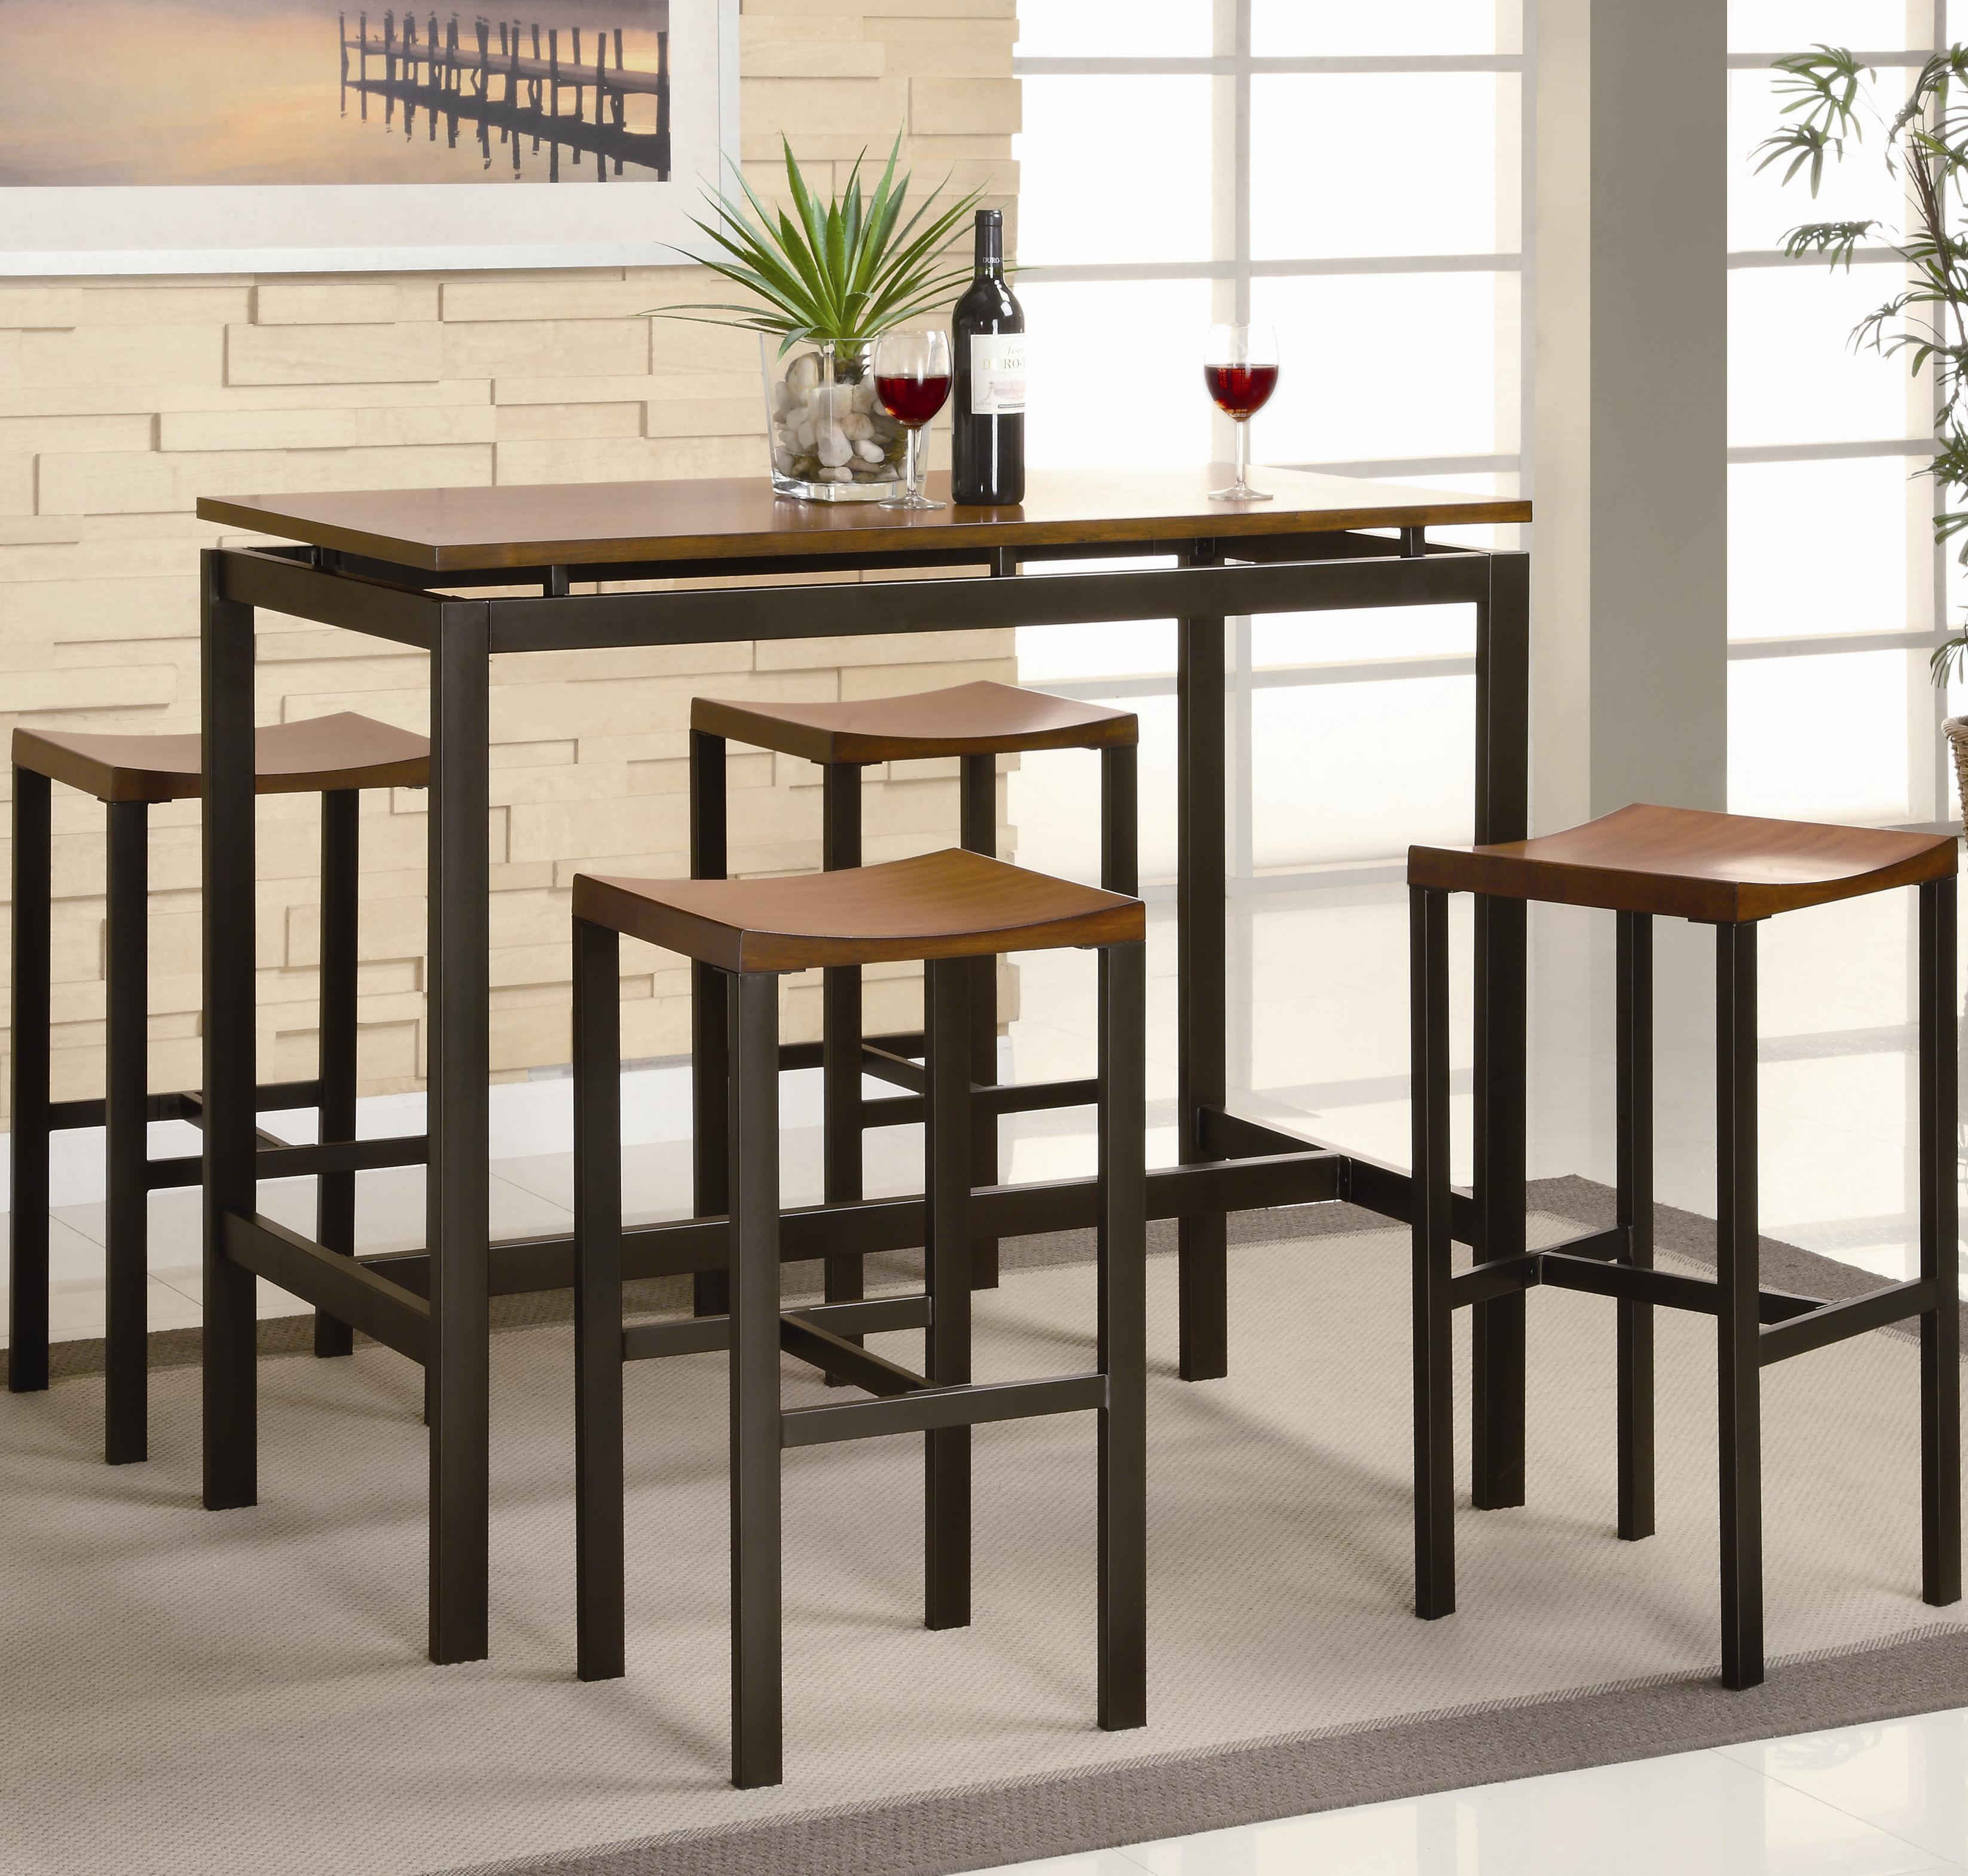 Atlus 5 Piece Counter Height Dining Set by Coaster at Lapeer Furniture & Mattress Center